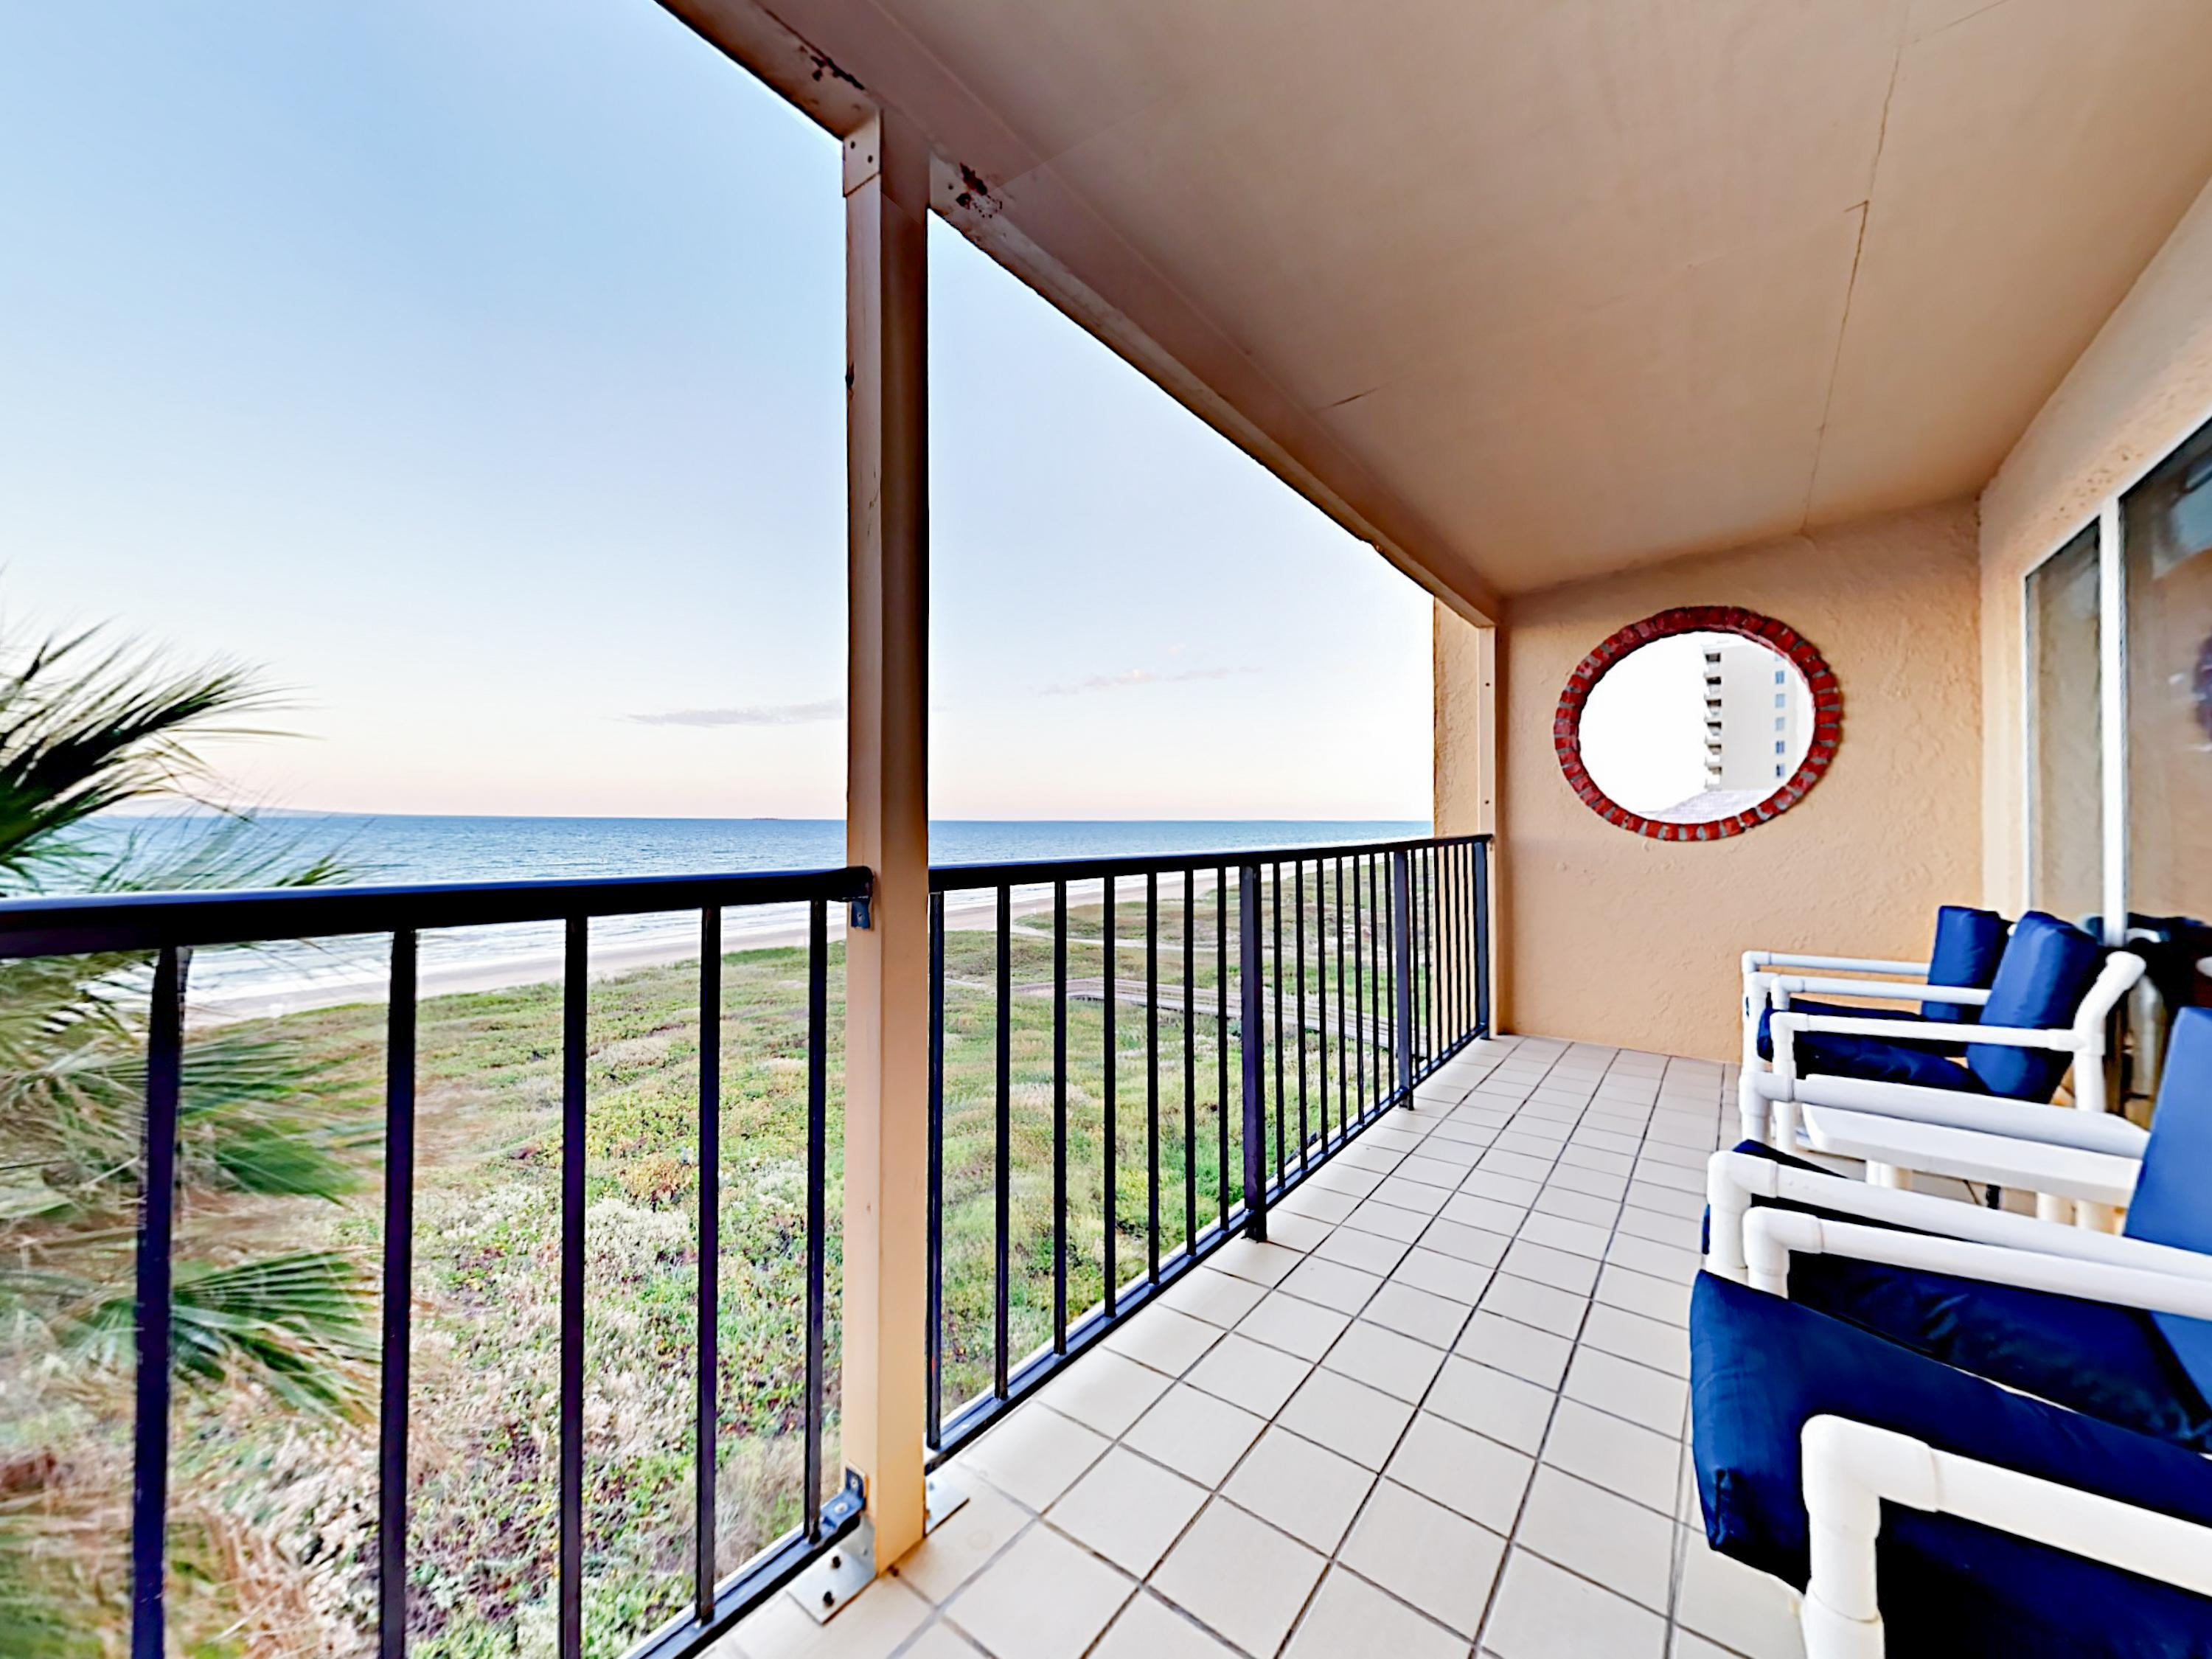 Relax on your balcony with gorgeous Gulf views. This property is maintained and managed by TurnKey Vacation Rentals.